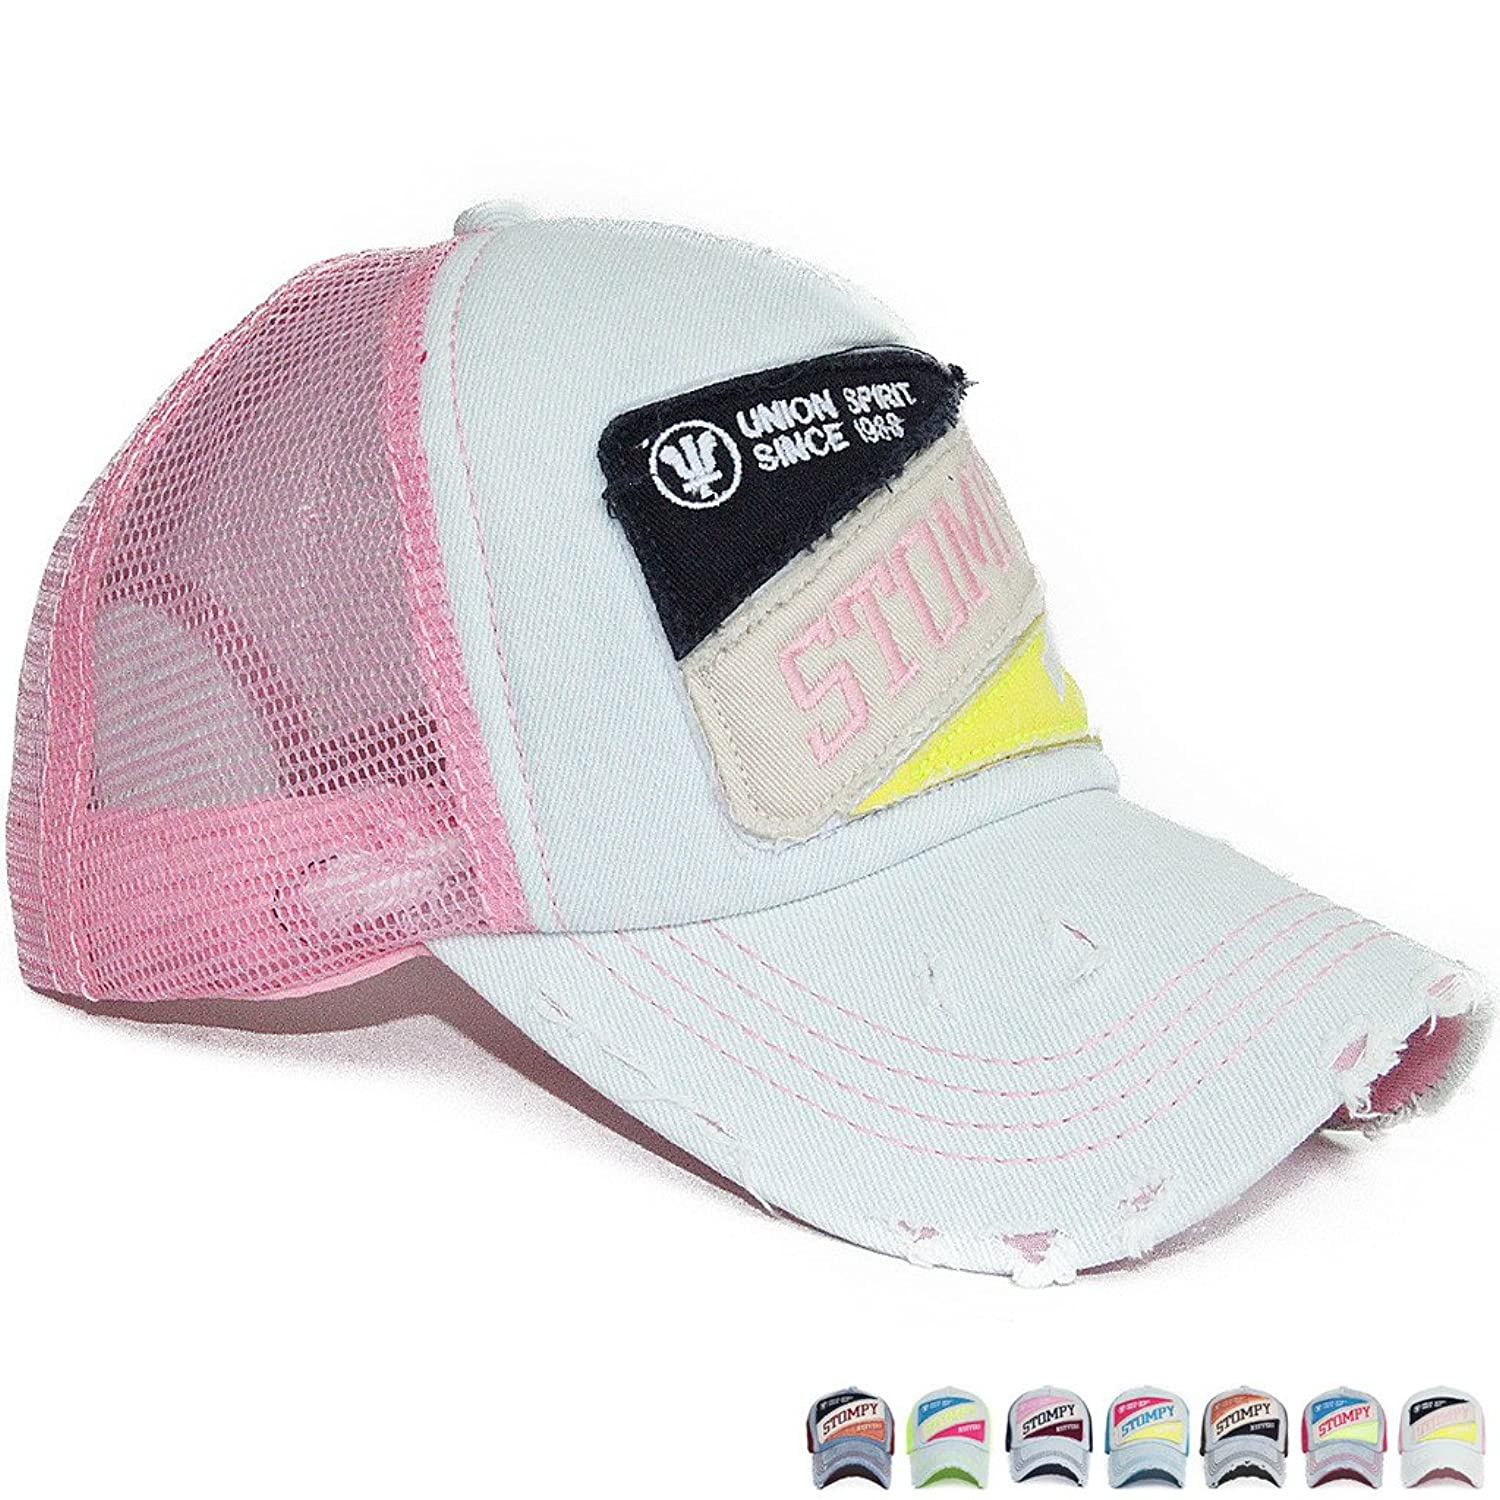 Summer Sun Lady's Women's Baseball Hats Washed Cotton Bright Color Snapback Caps